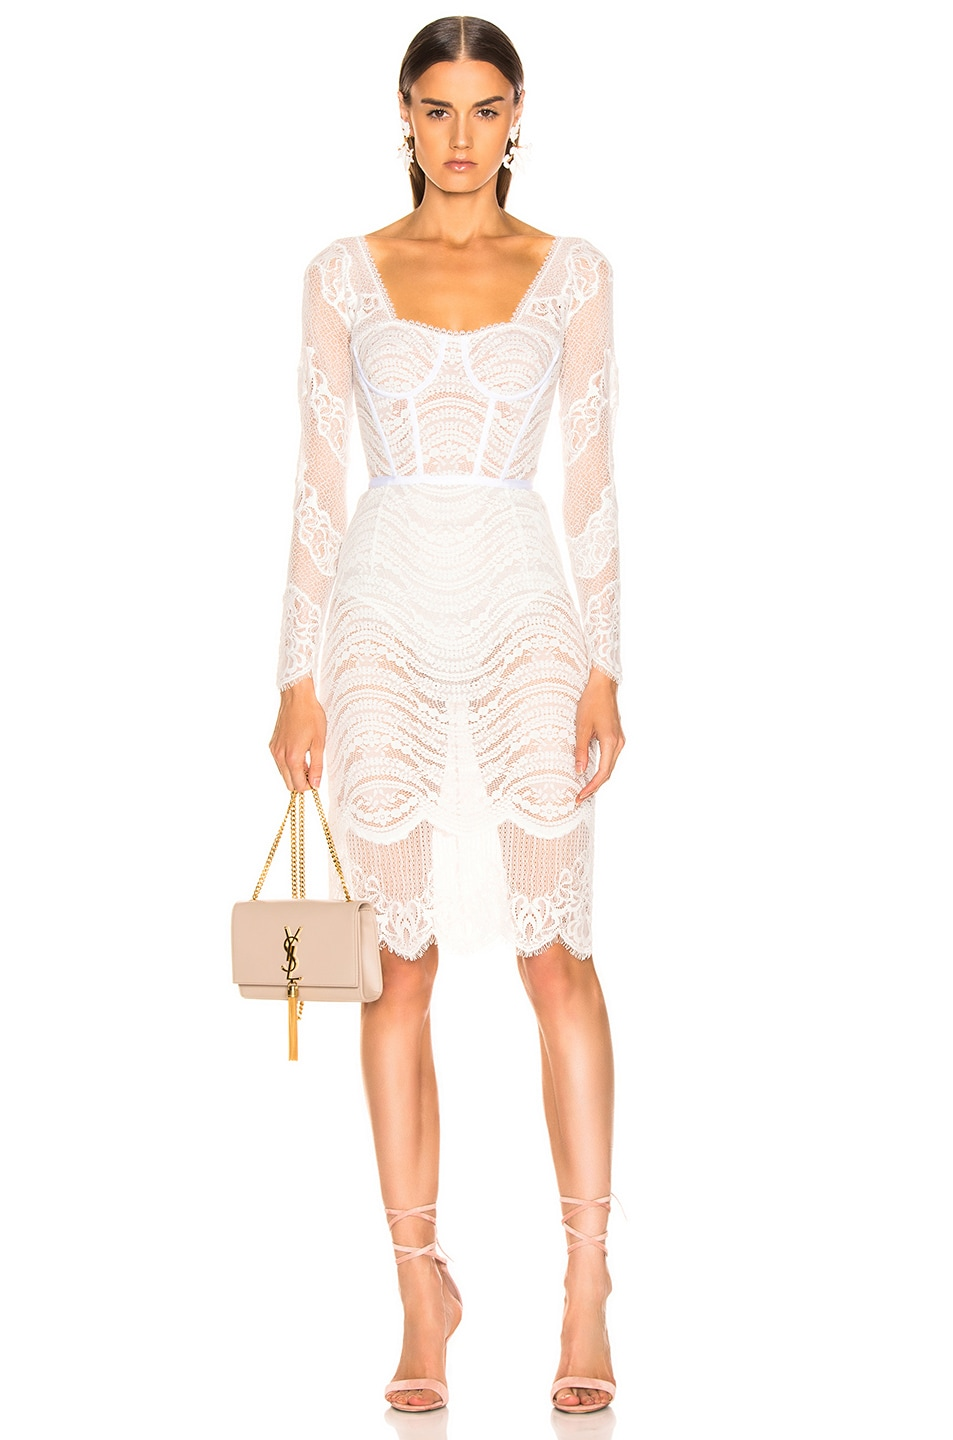 a18b1344a2b JONATHAN SIMKHAI Lace Bustier Bodysuit Dress in White | FWRD